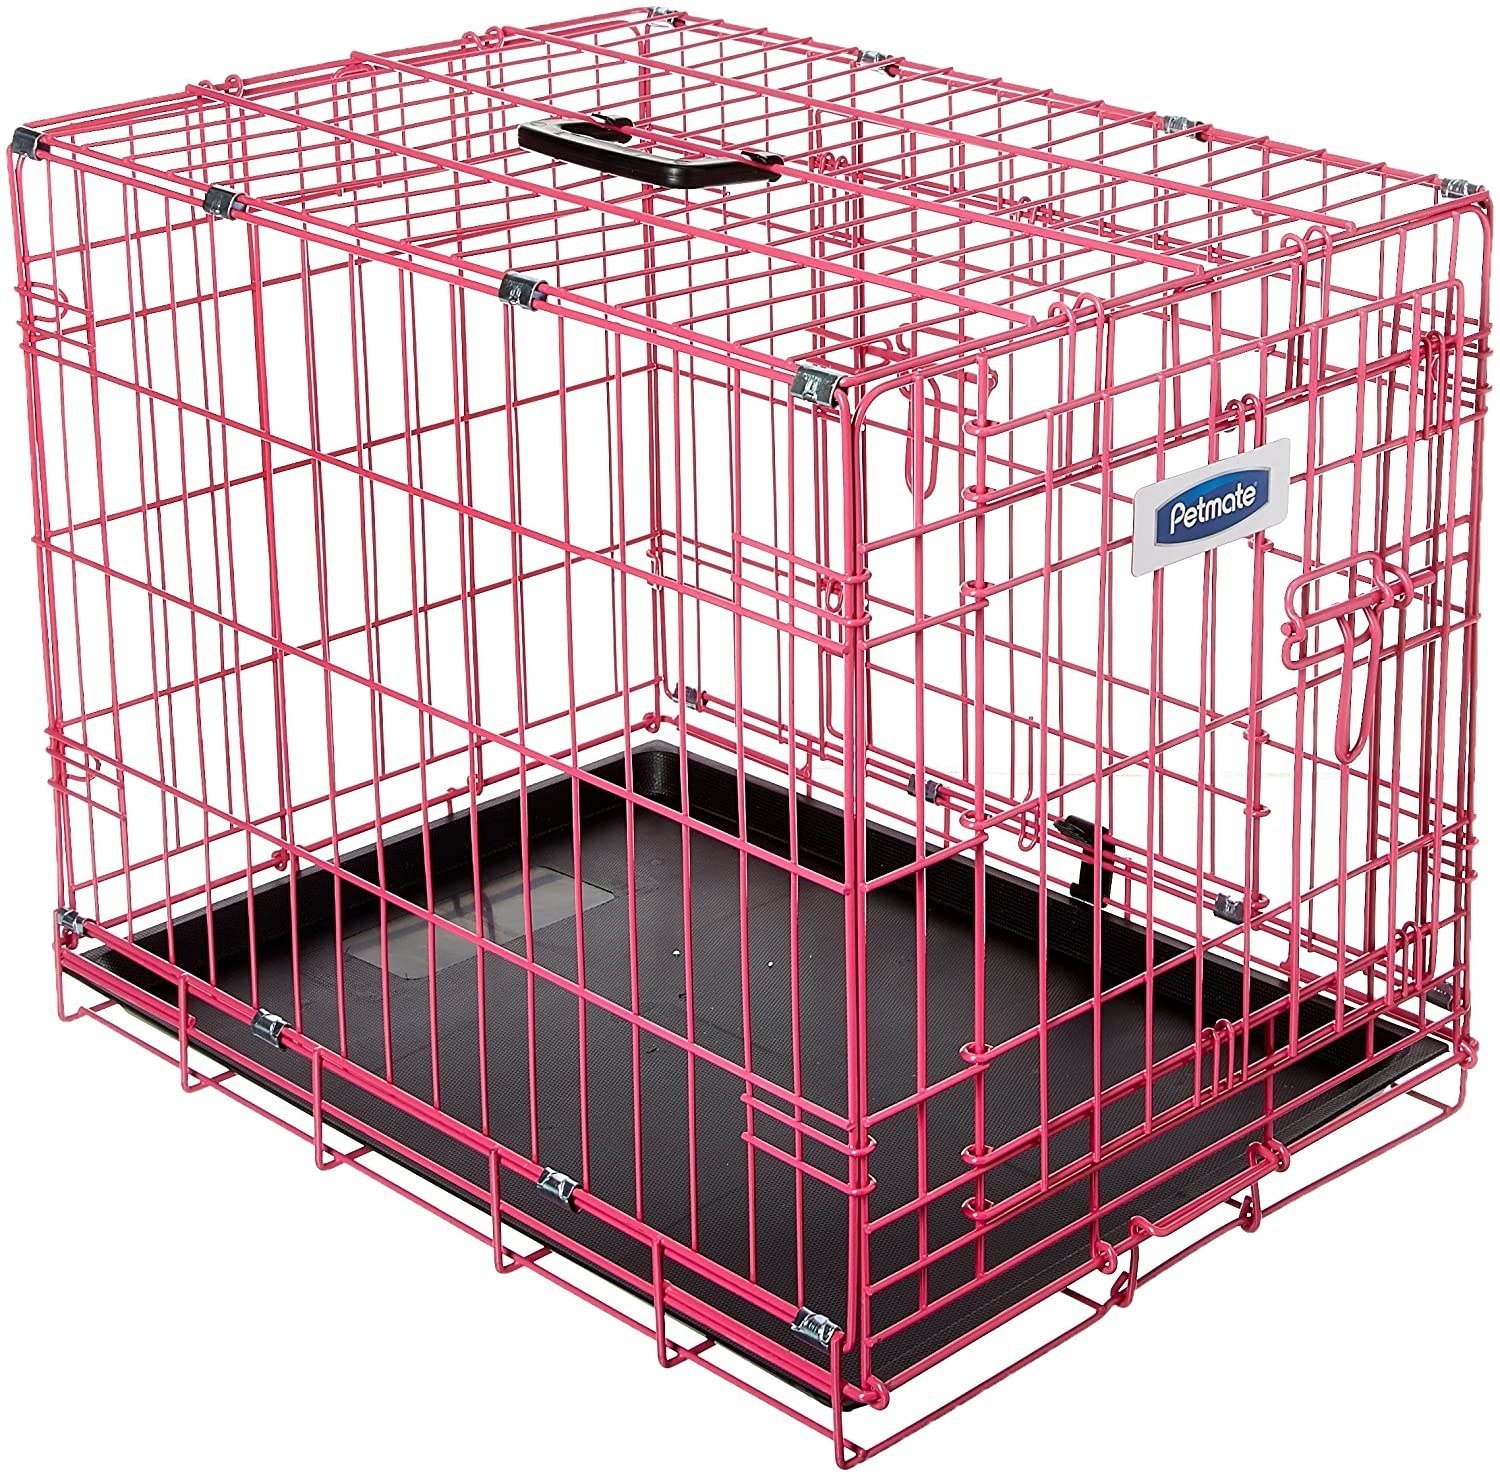 the pink crate